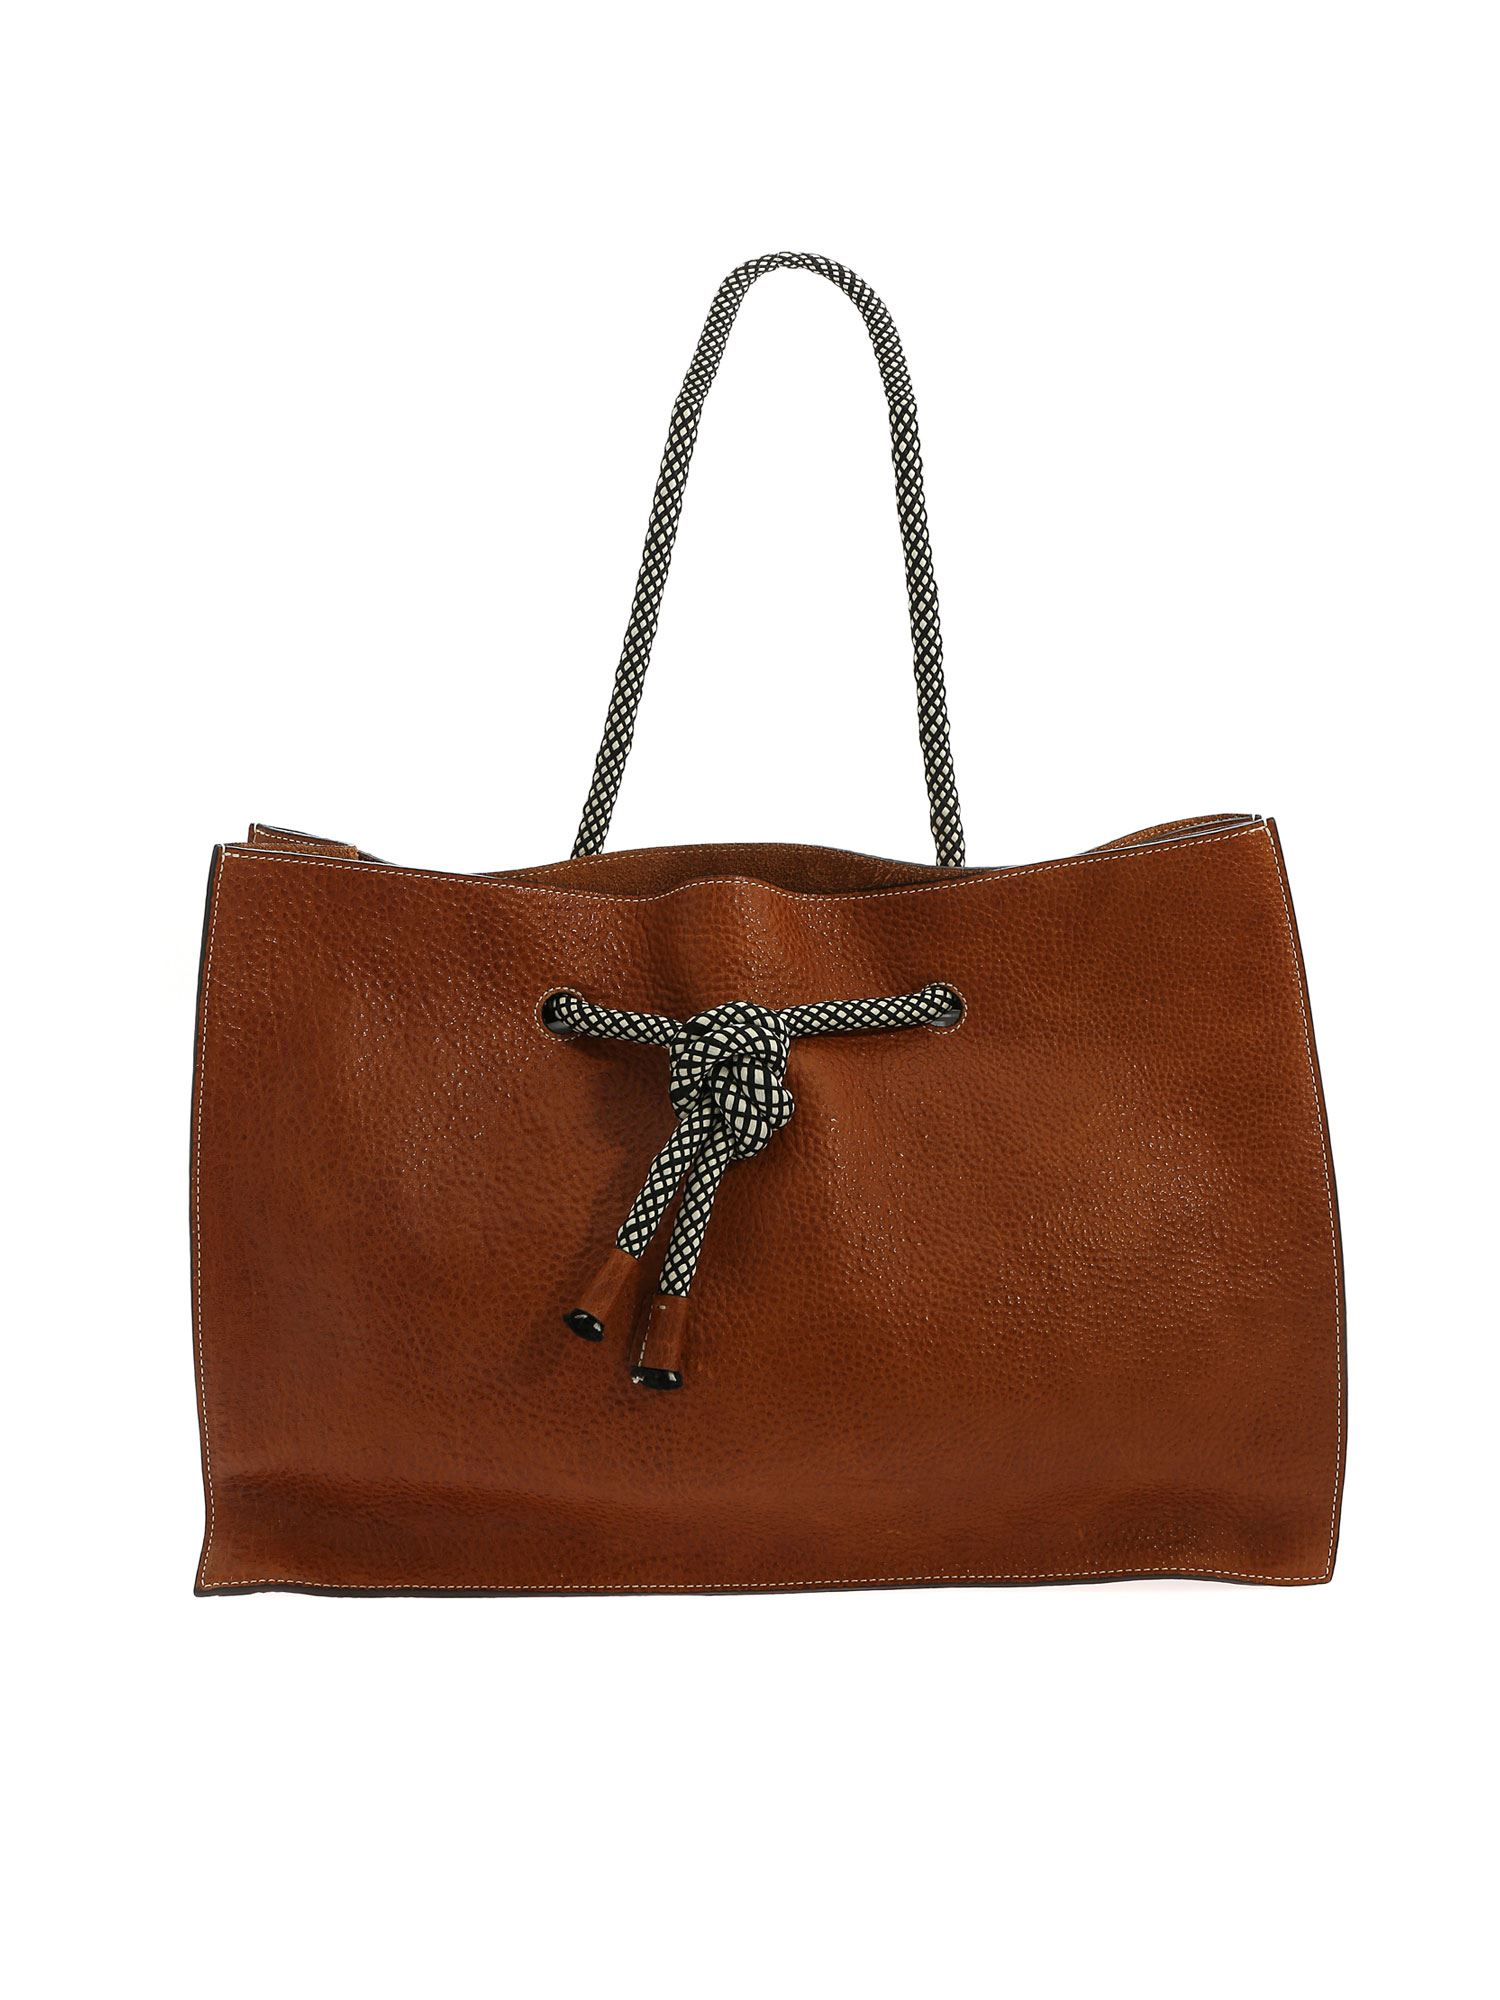 Sofie D'hoore Totes FABRIC HANDLE SHOULDER BAG IN LEATHER COLOR